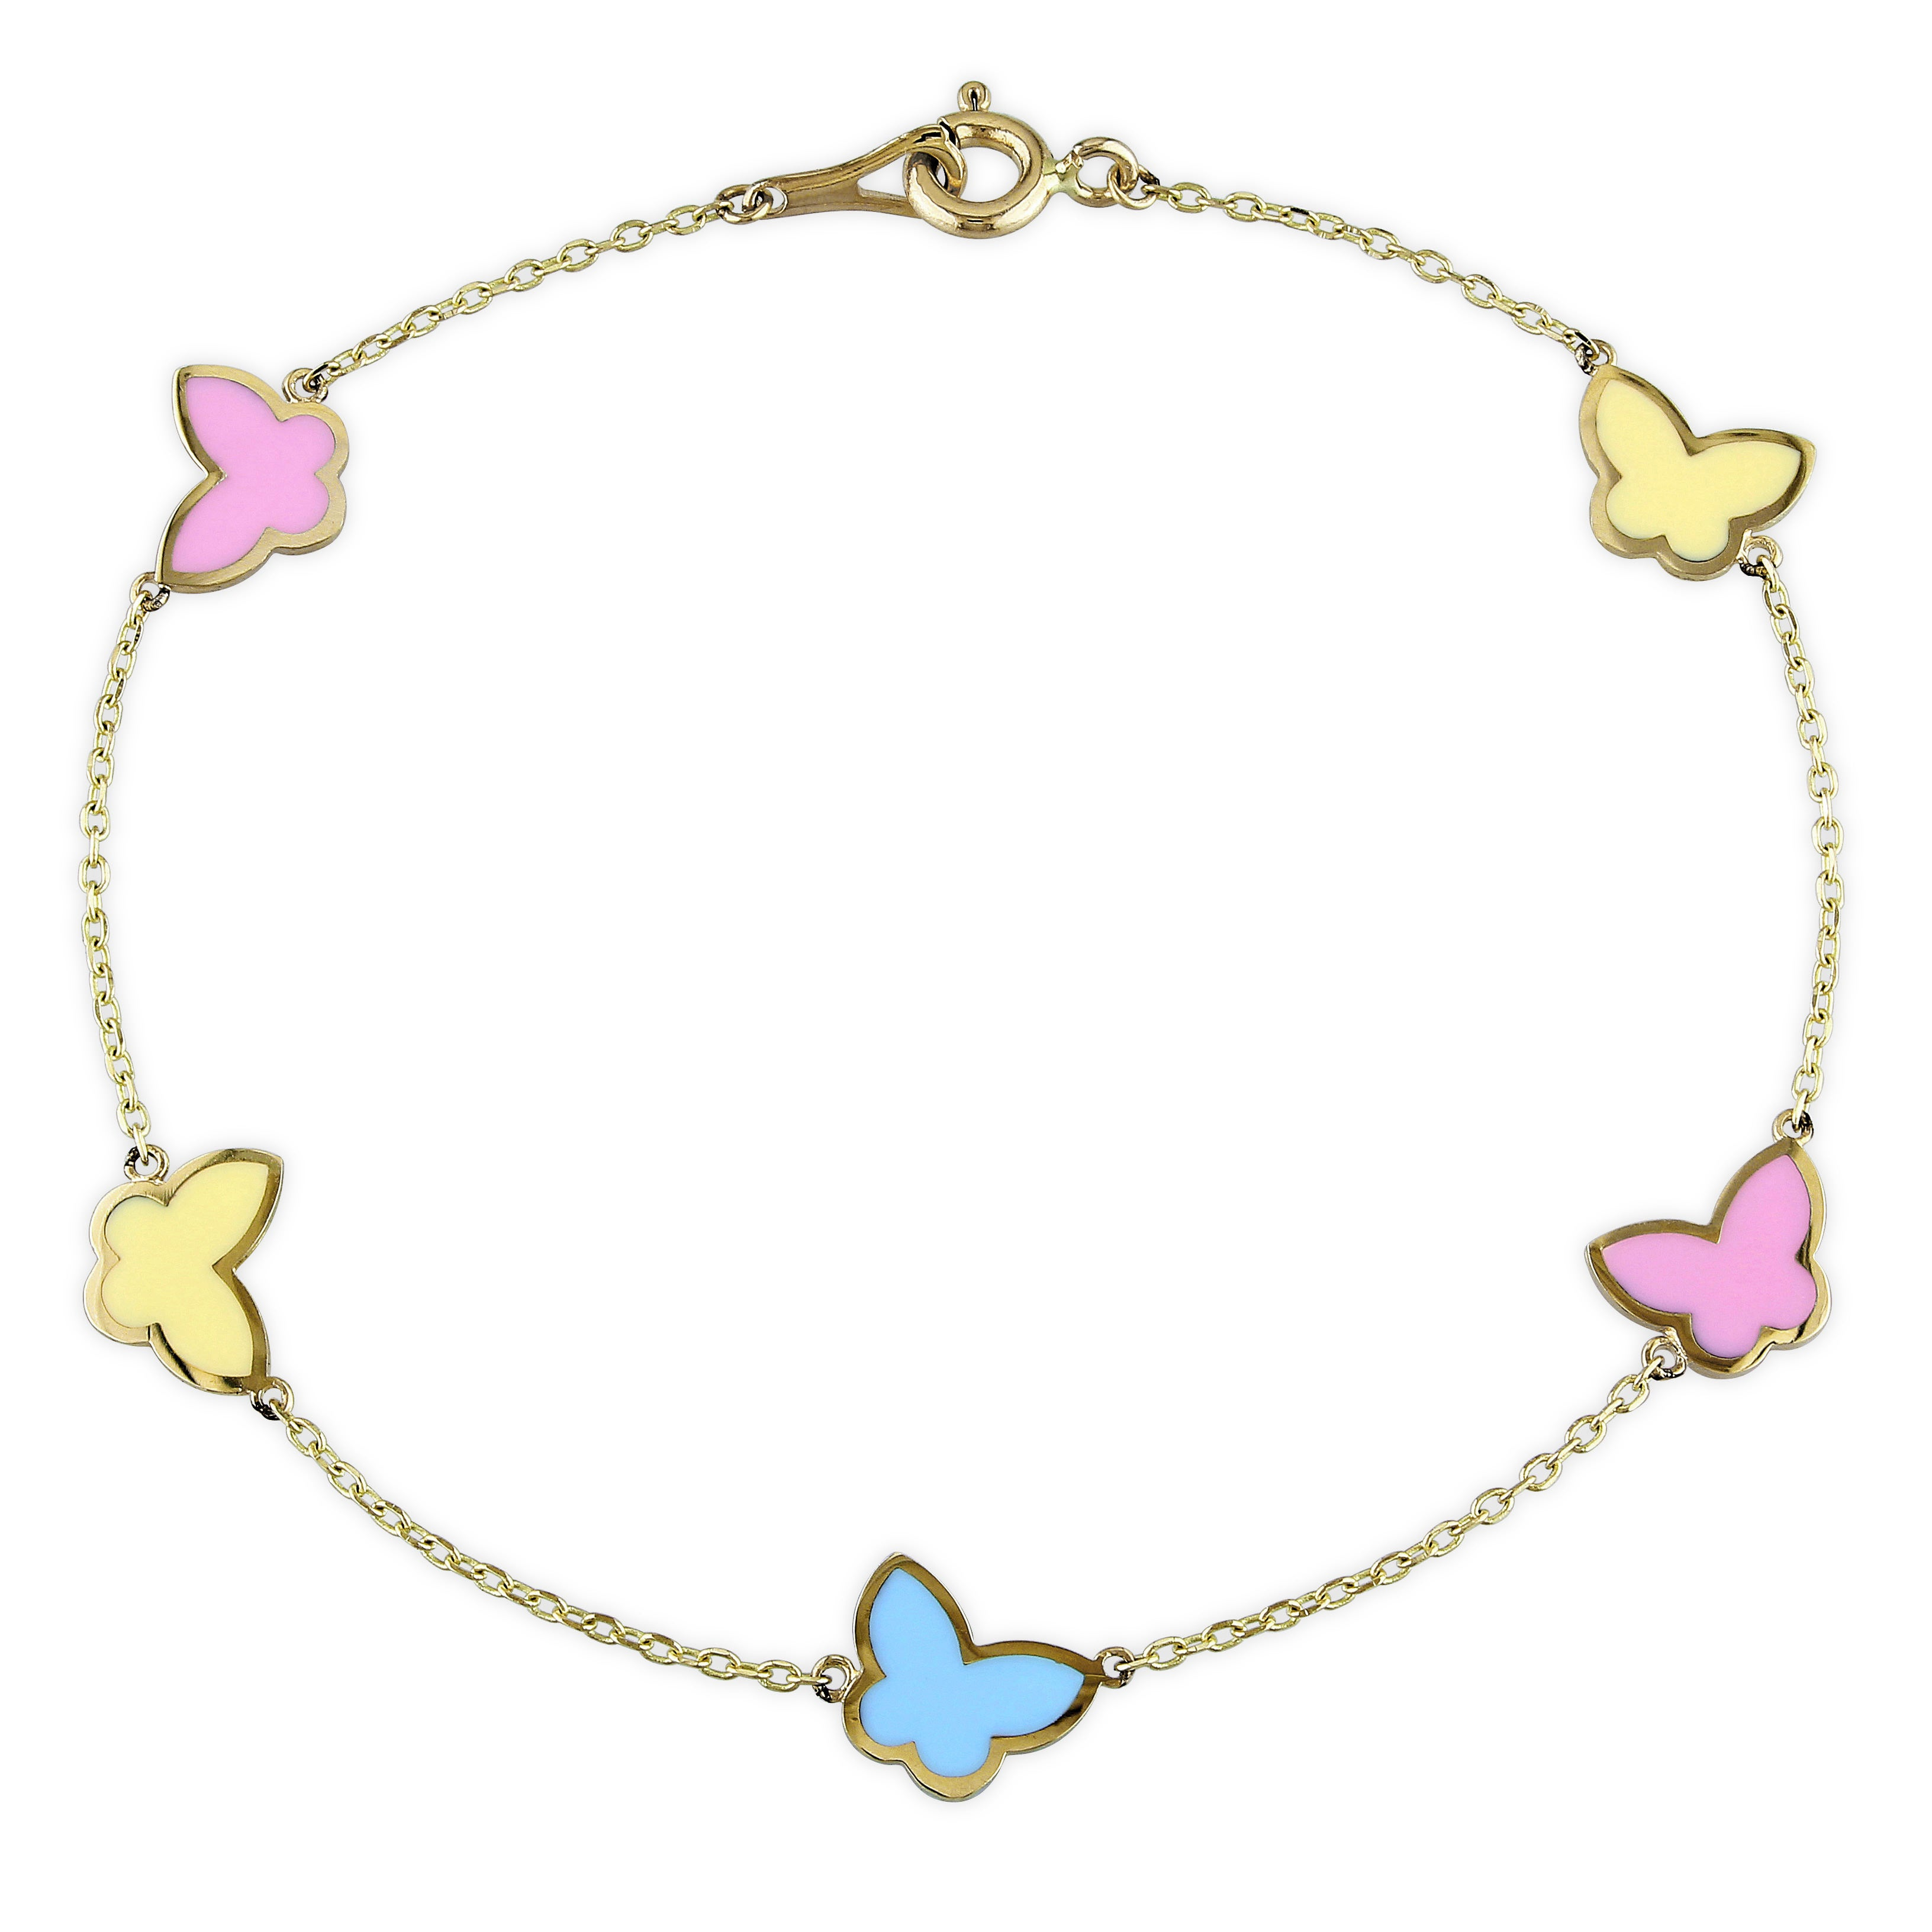 58954cb8b3d8a Miadora 14k Yellow Gold Pink, Blue and Yellow Enamel Butterfly Charm  Bracelet